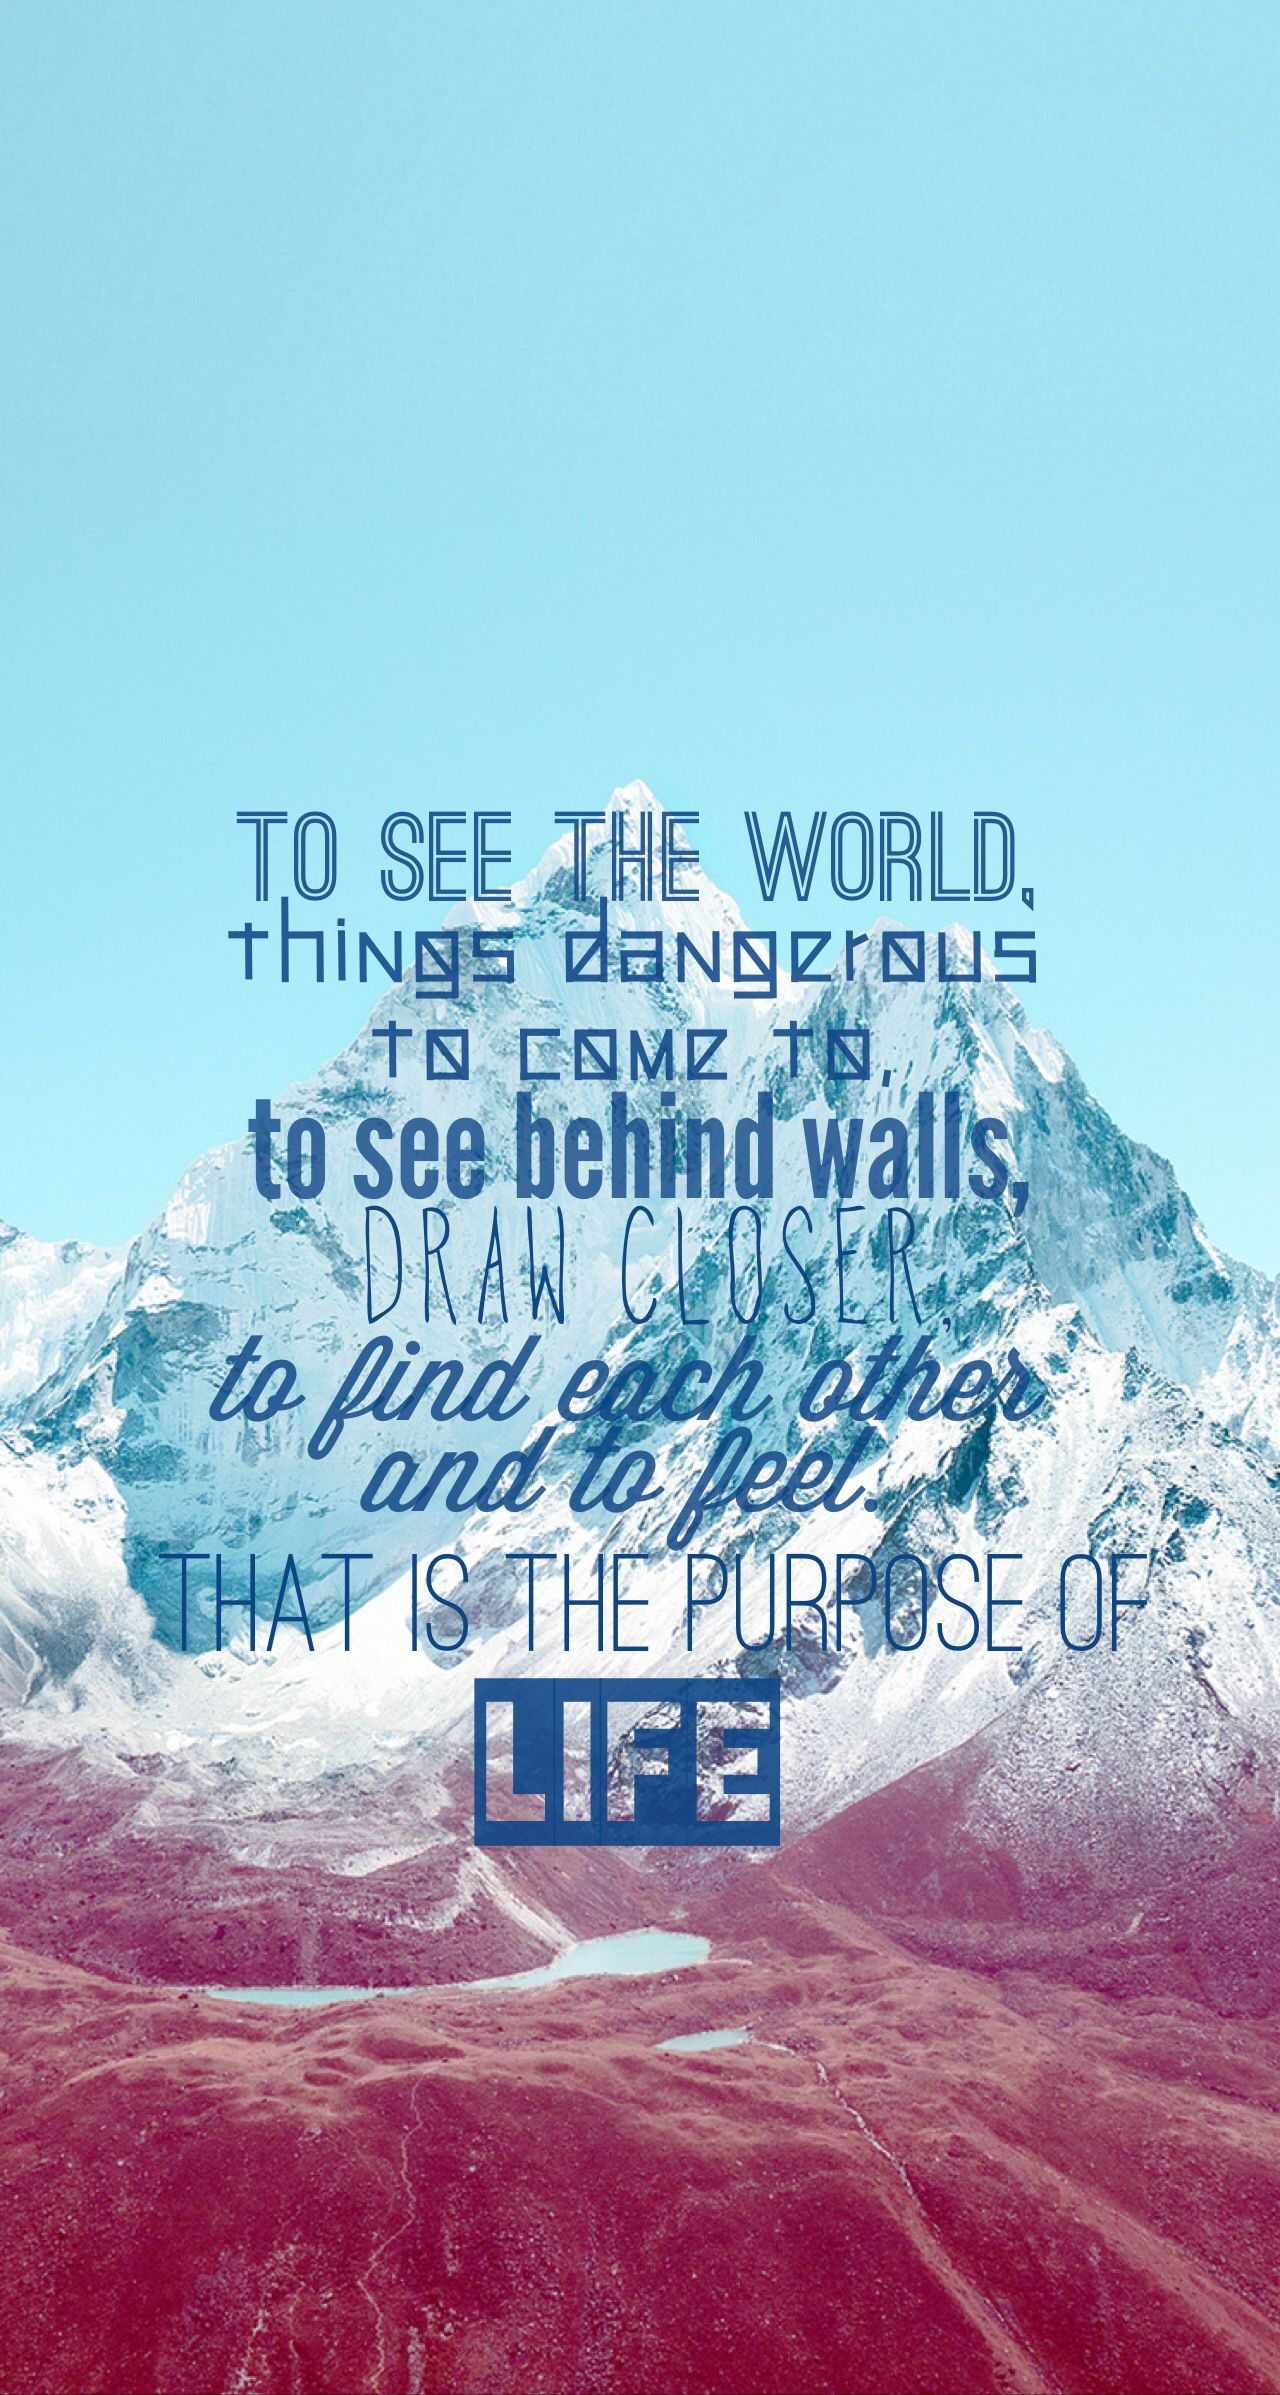 the secret life of walter mitty watch this movie here from the secret life of walter mitty